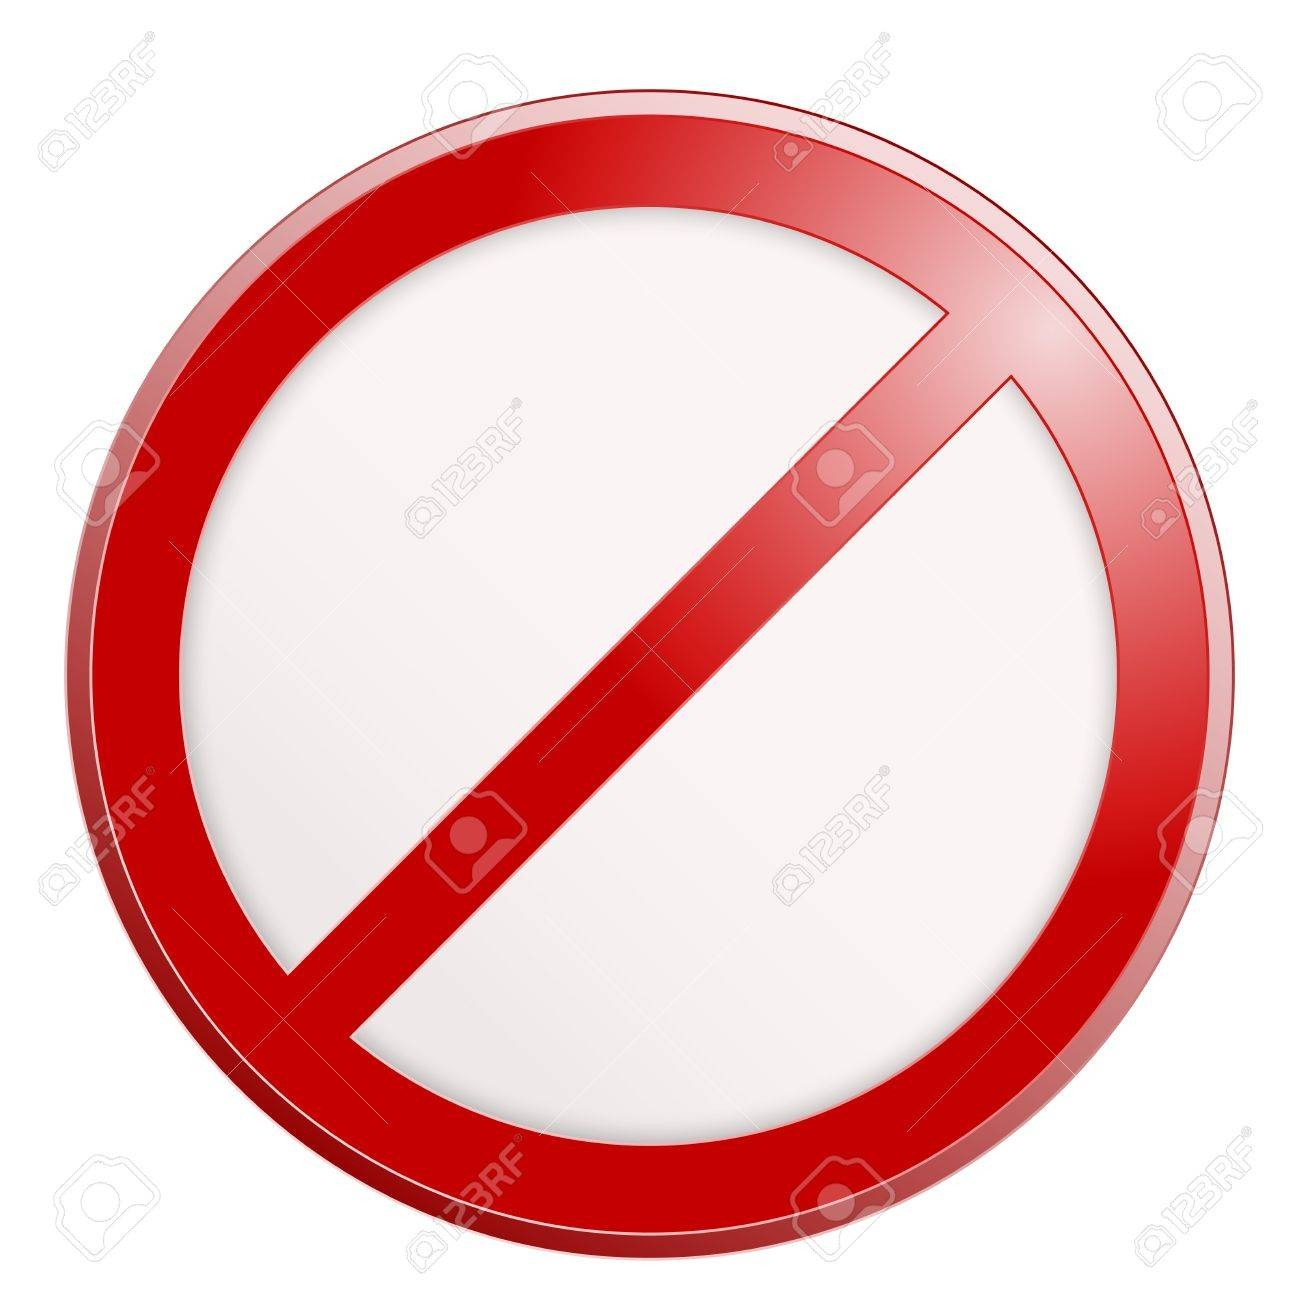 Stop Sign  No Sign Template  Vector Realistic Illustration